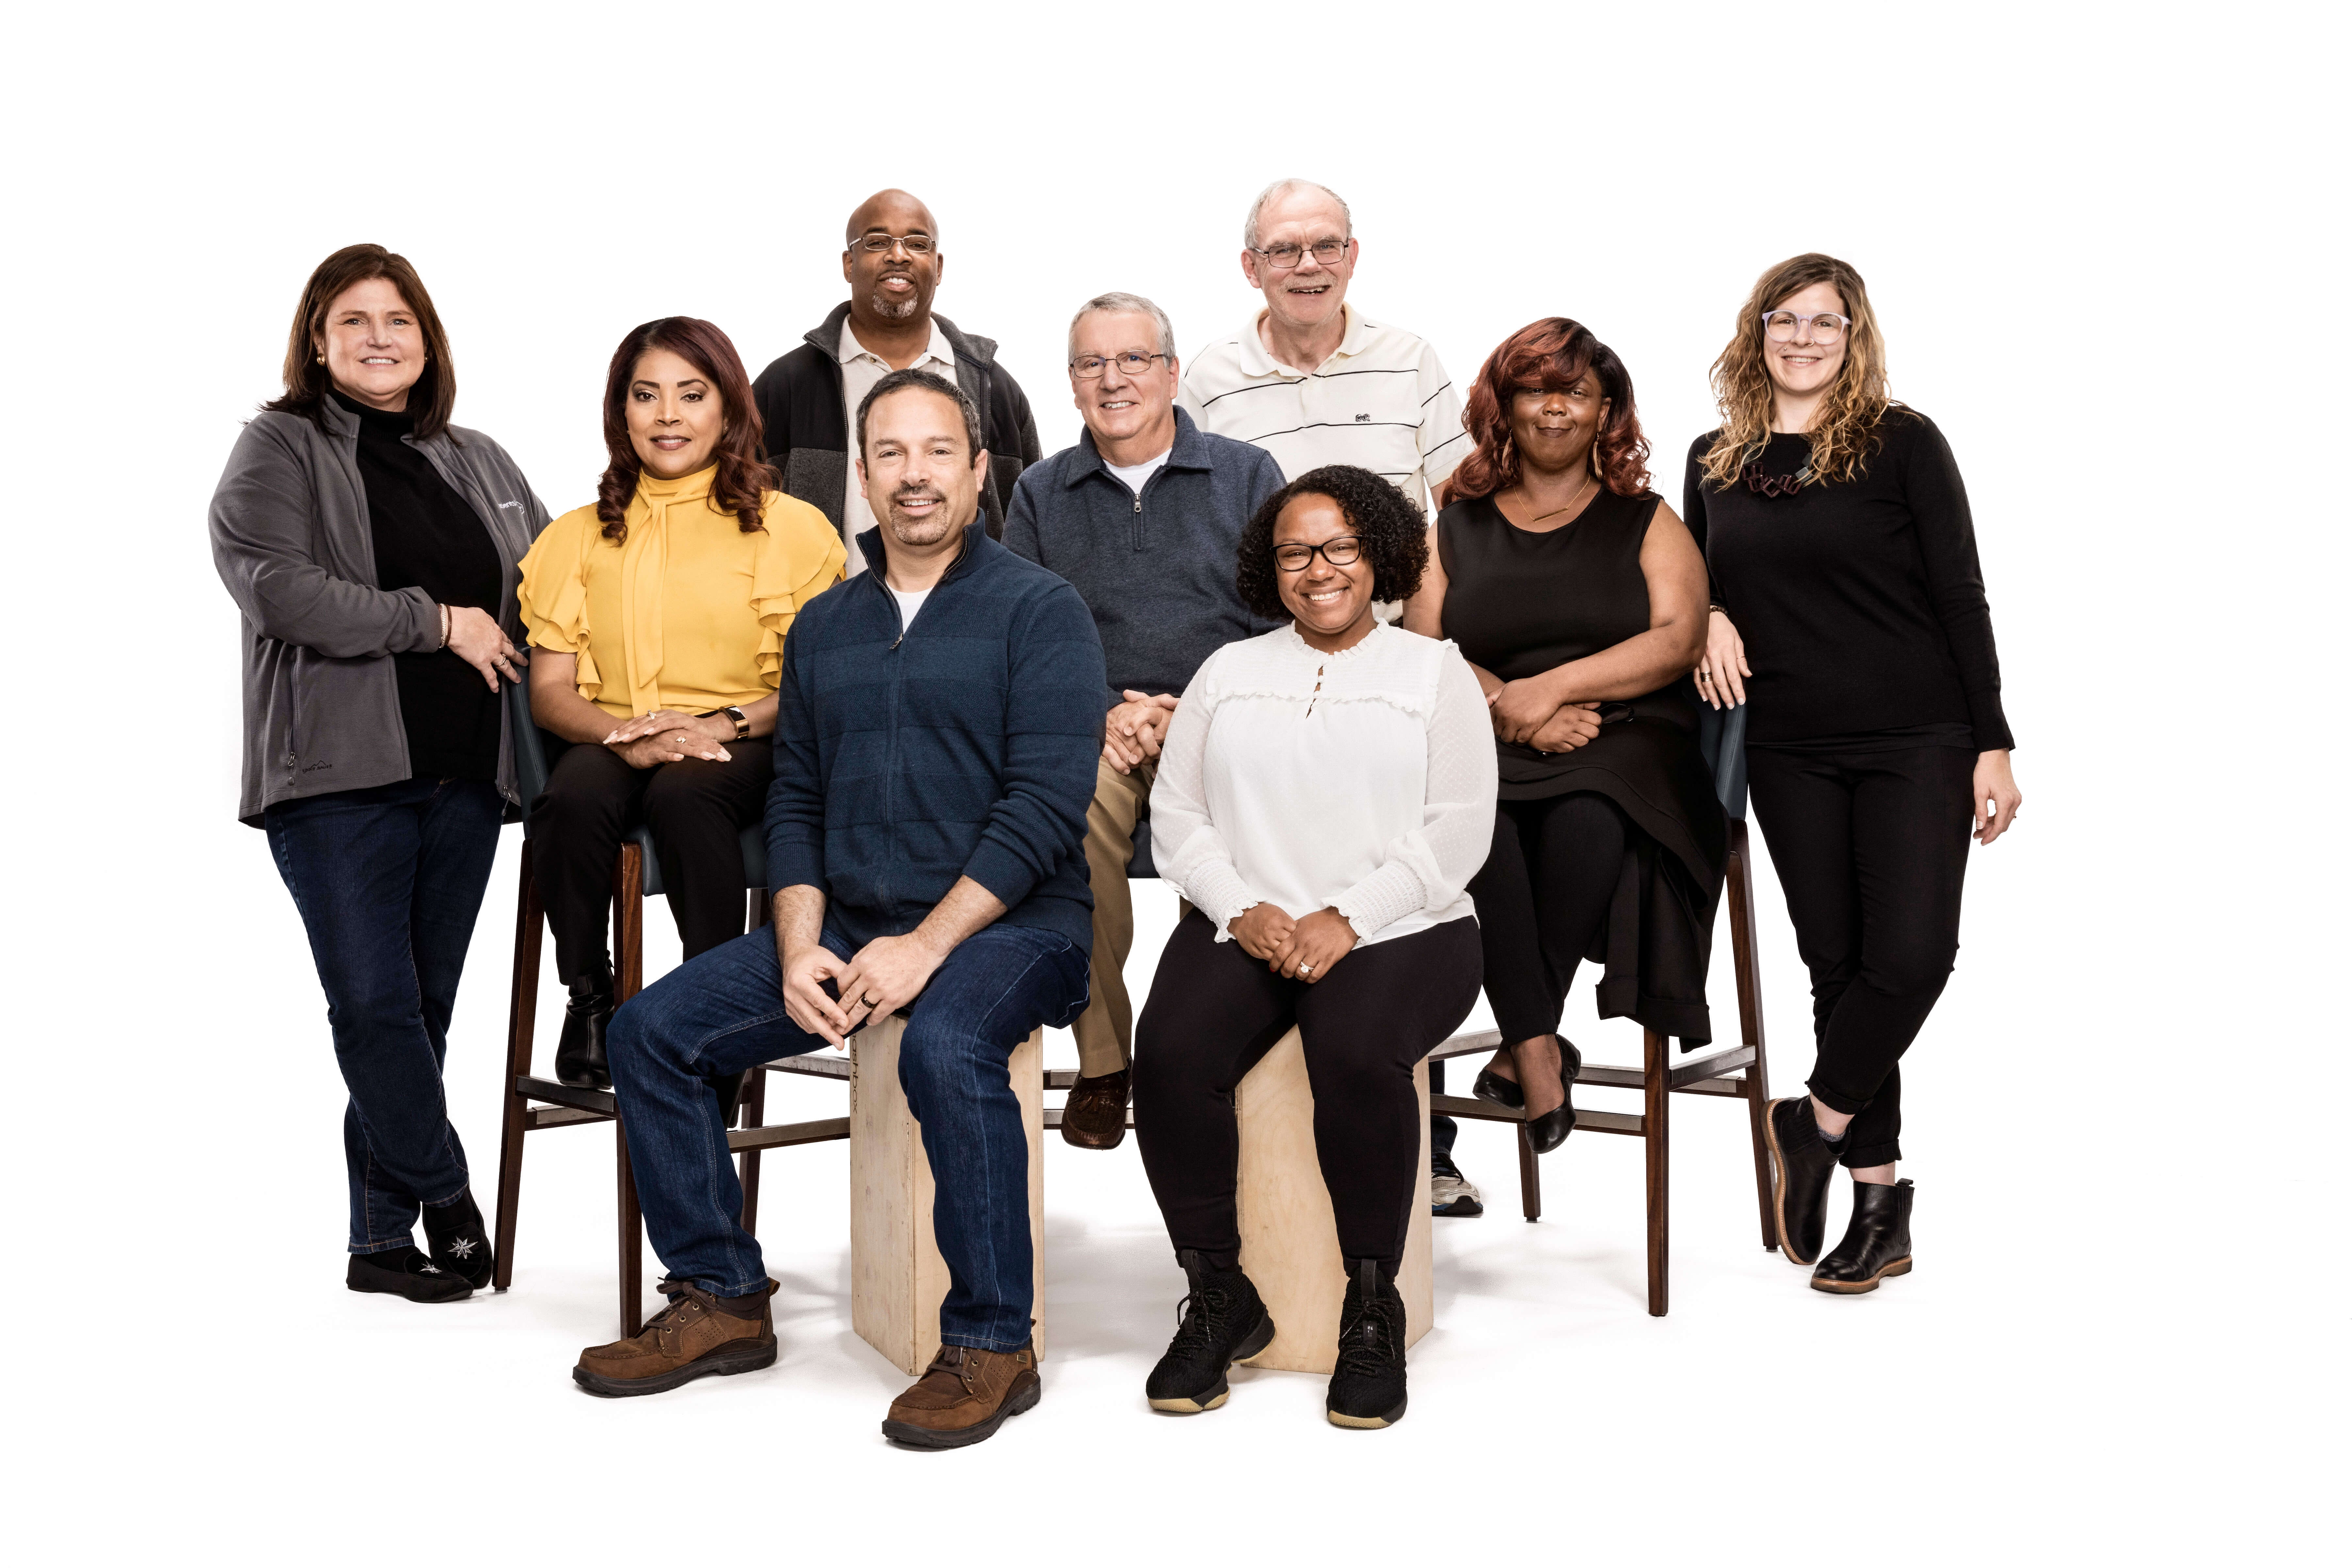 people with health conditions, PatientsLikeMe members, 2019 Team of Advisors